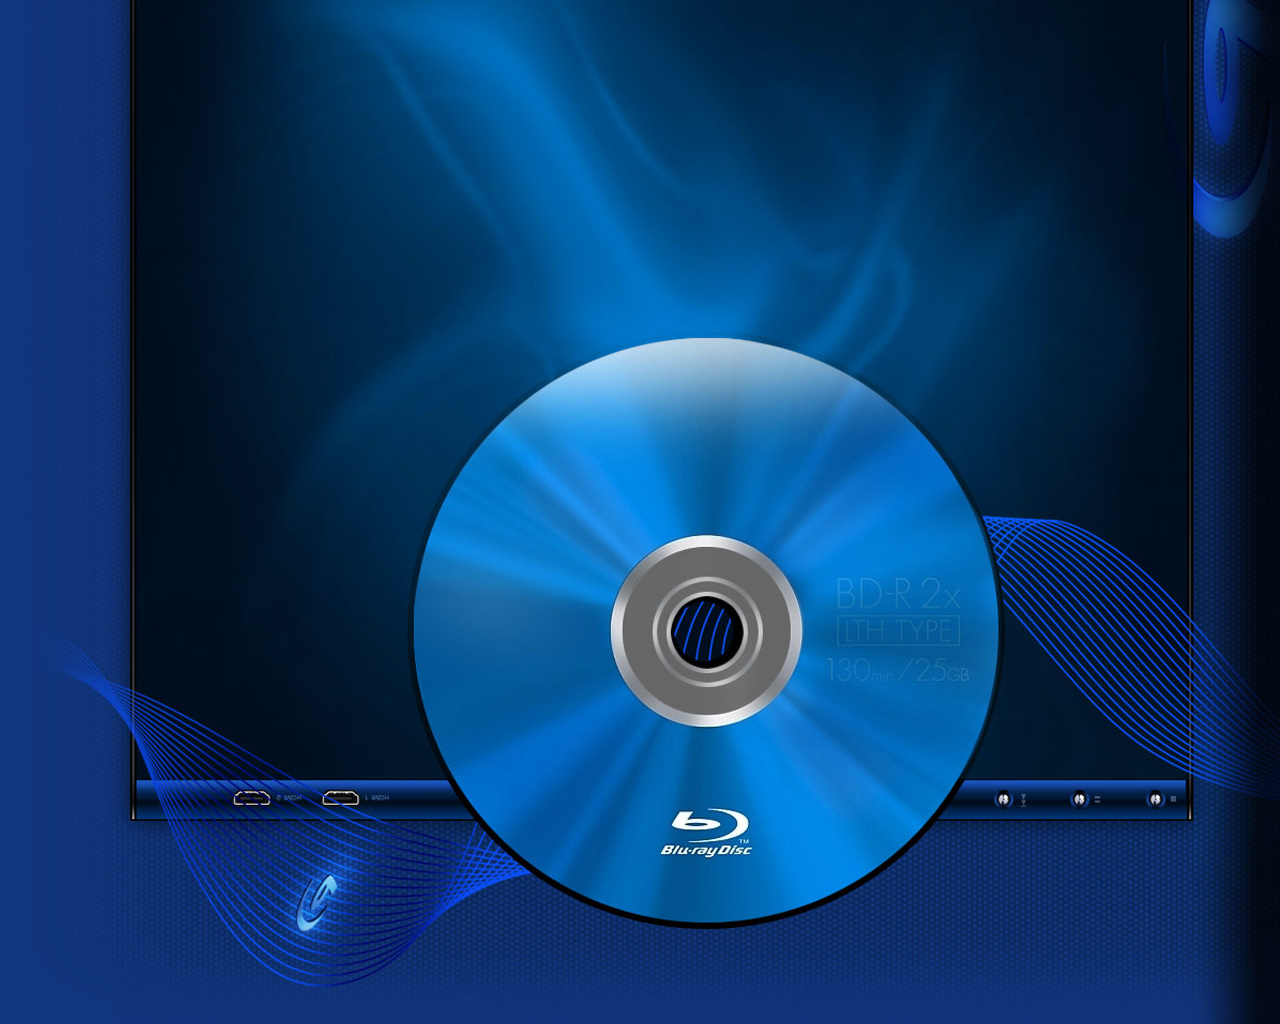 Bluray Disc